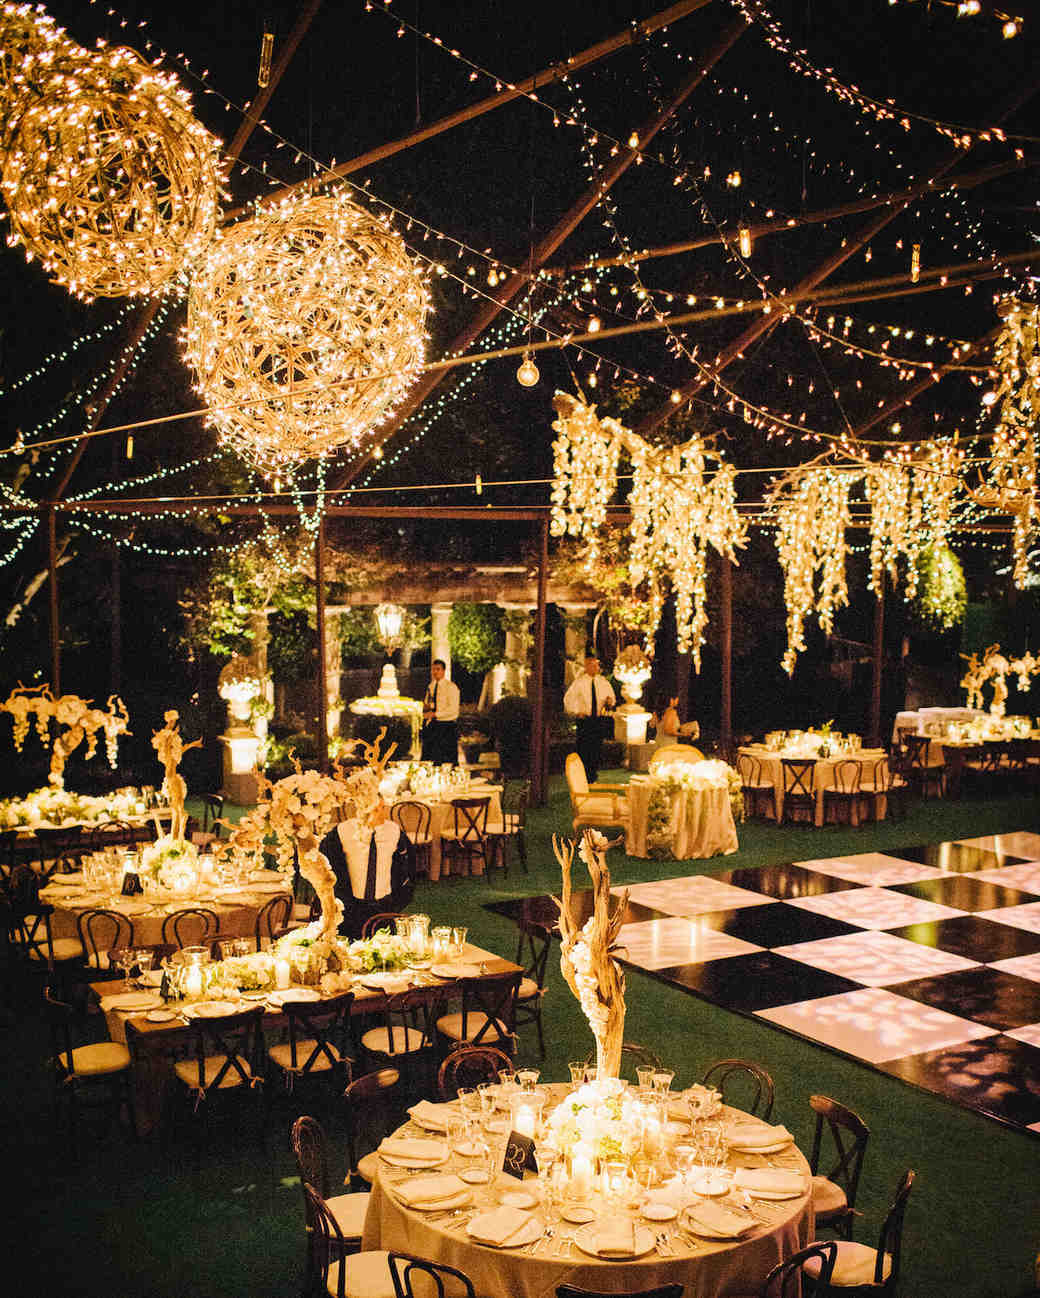 Wedding Reception Activities Ideas: Outdoor Wedding Lighting Ideas From Real Celebrations